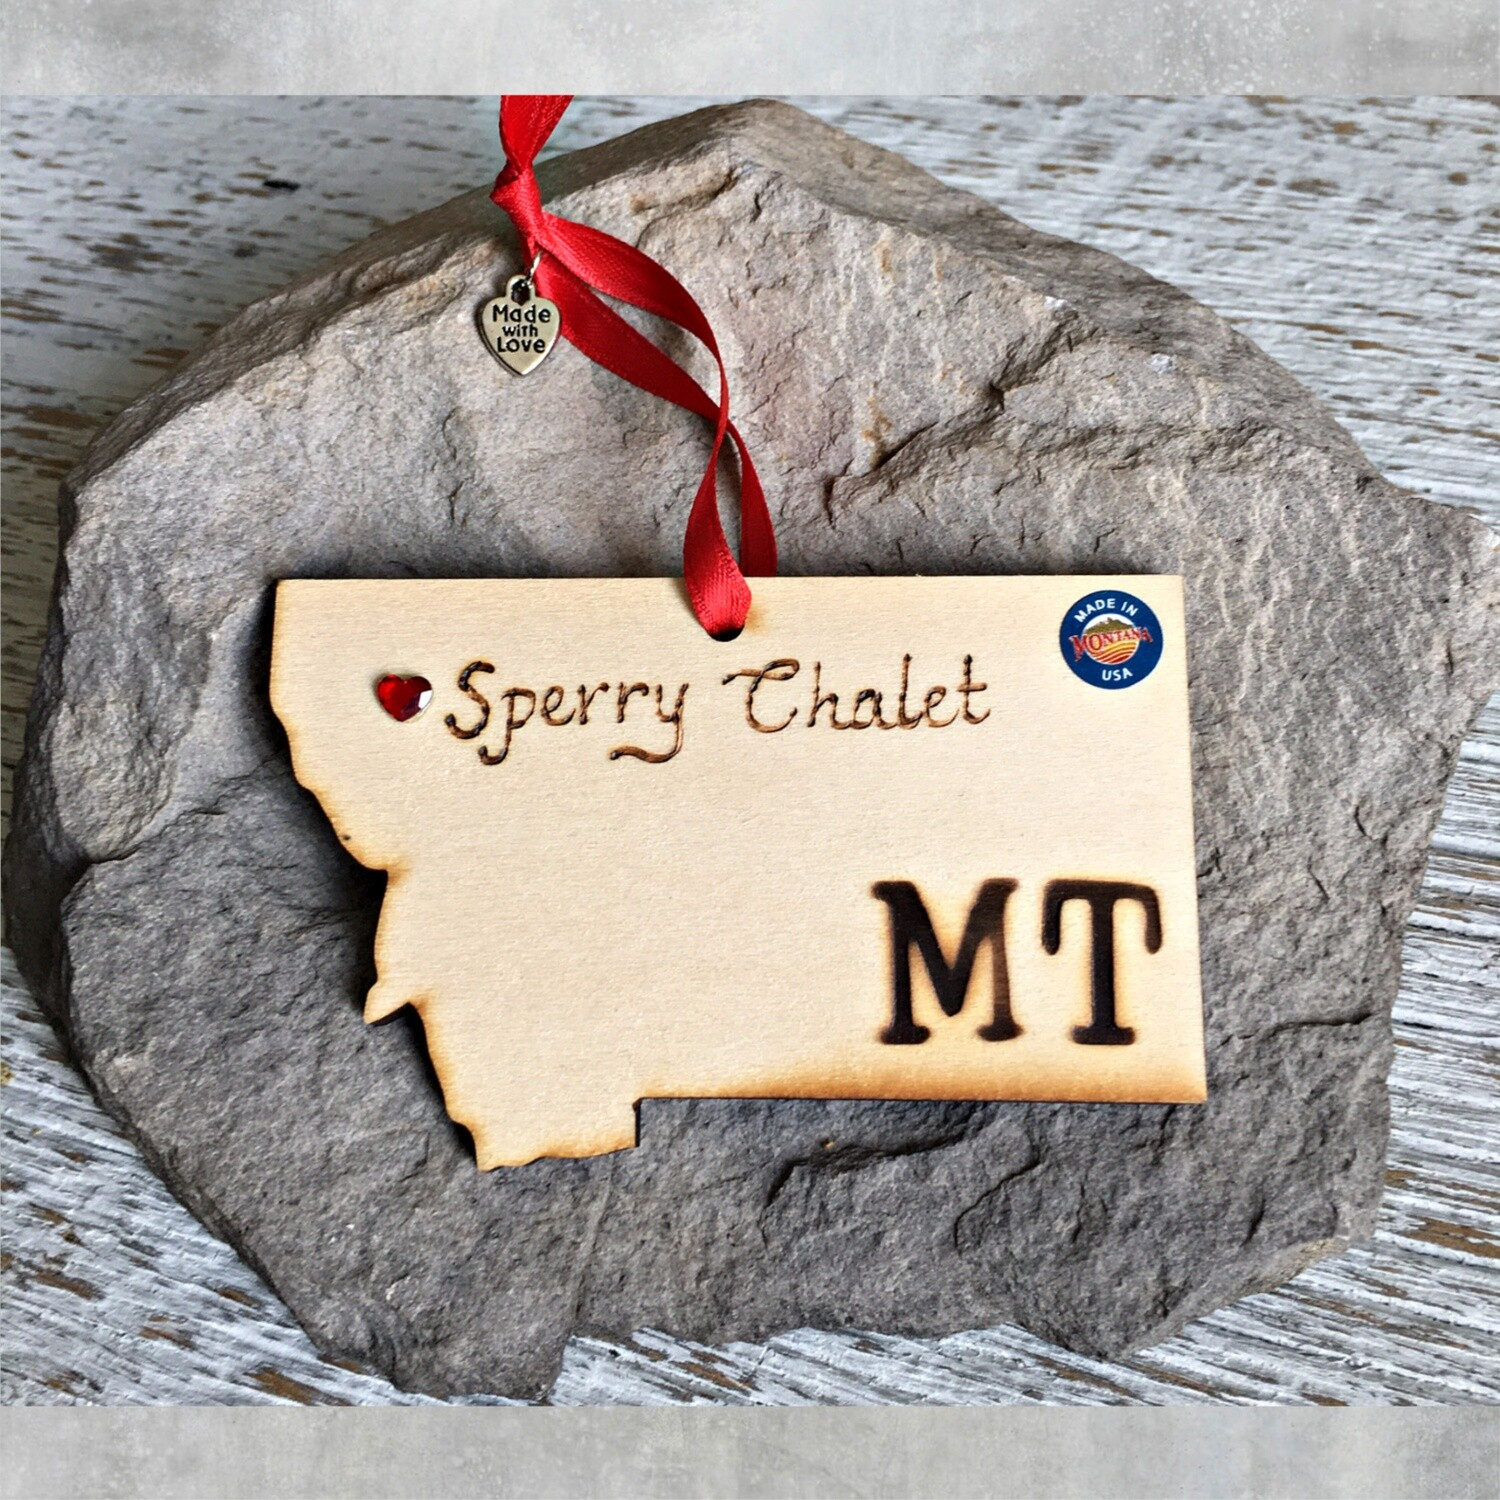 40-20 Sperry Chalet MT Ornament